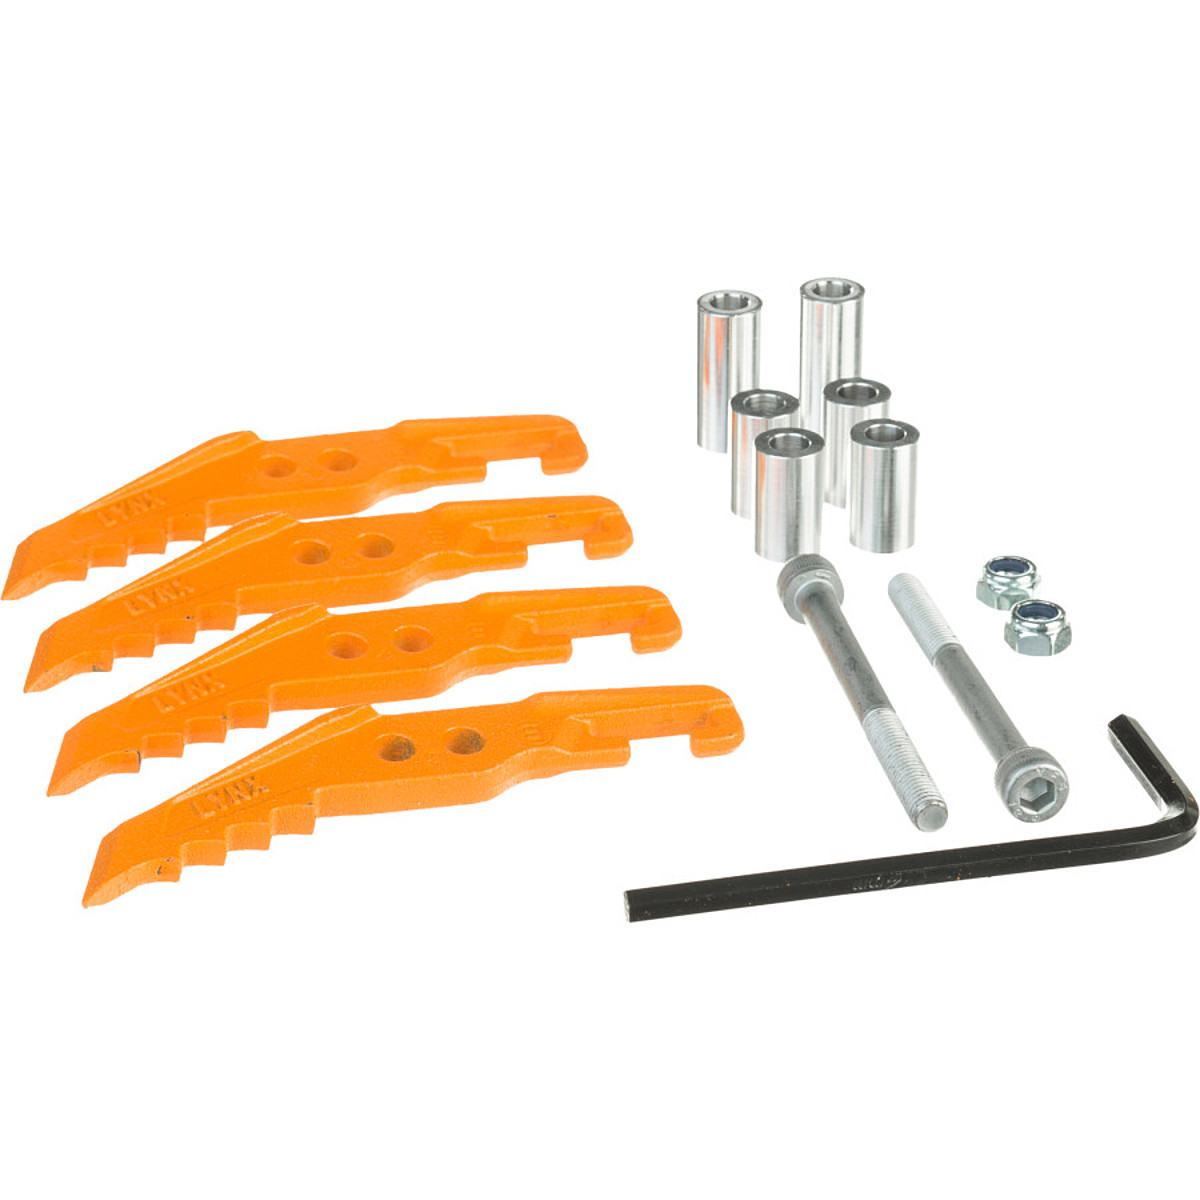 Petzl Points Kit for Lynx